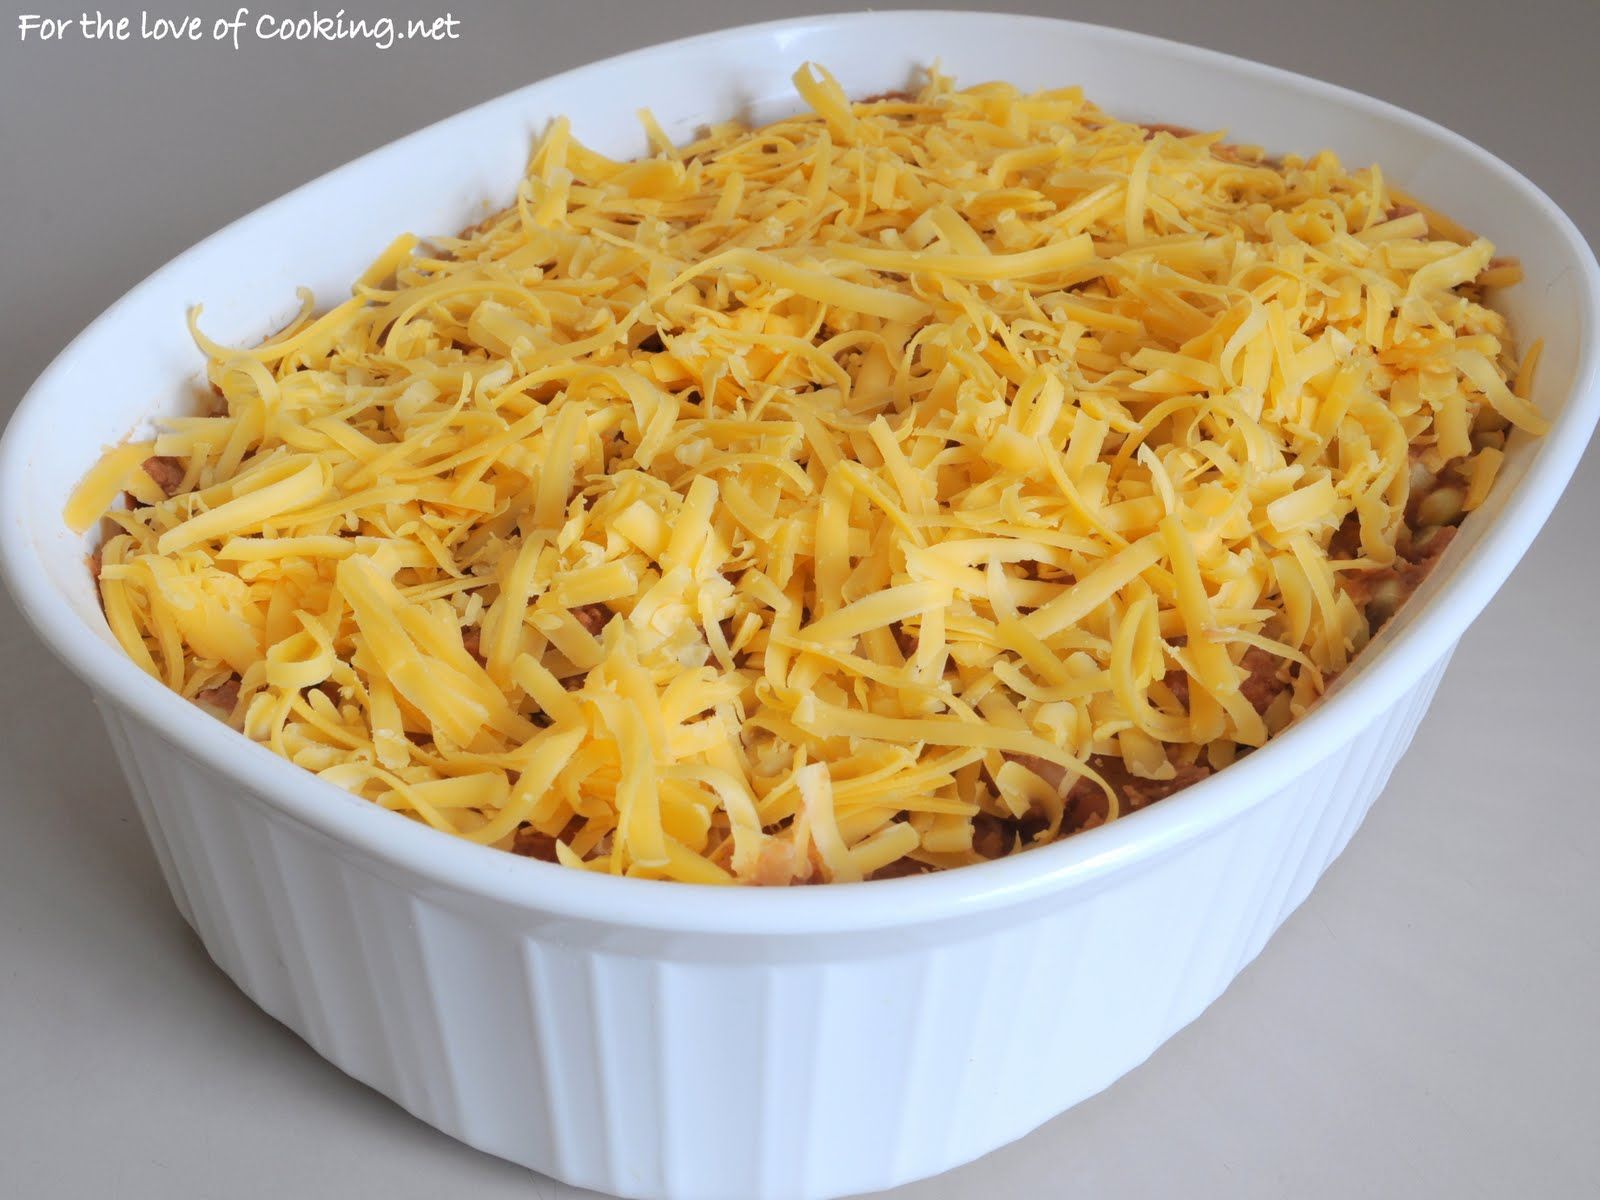 Southwestern Casserole | For the Love of Cooking